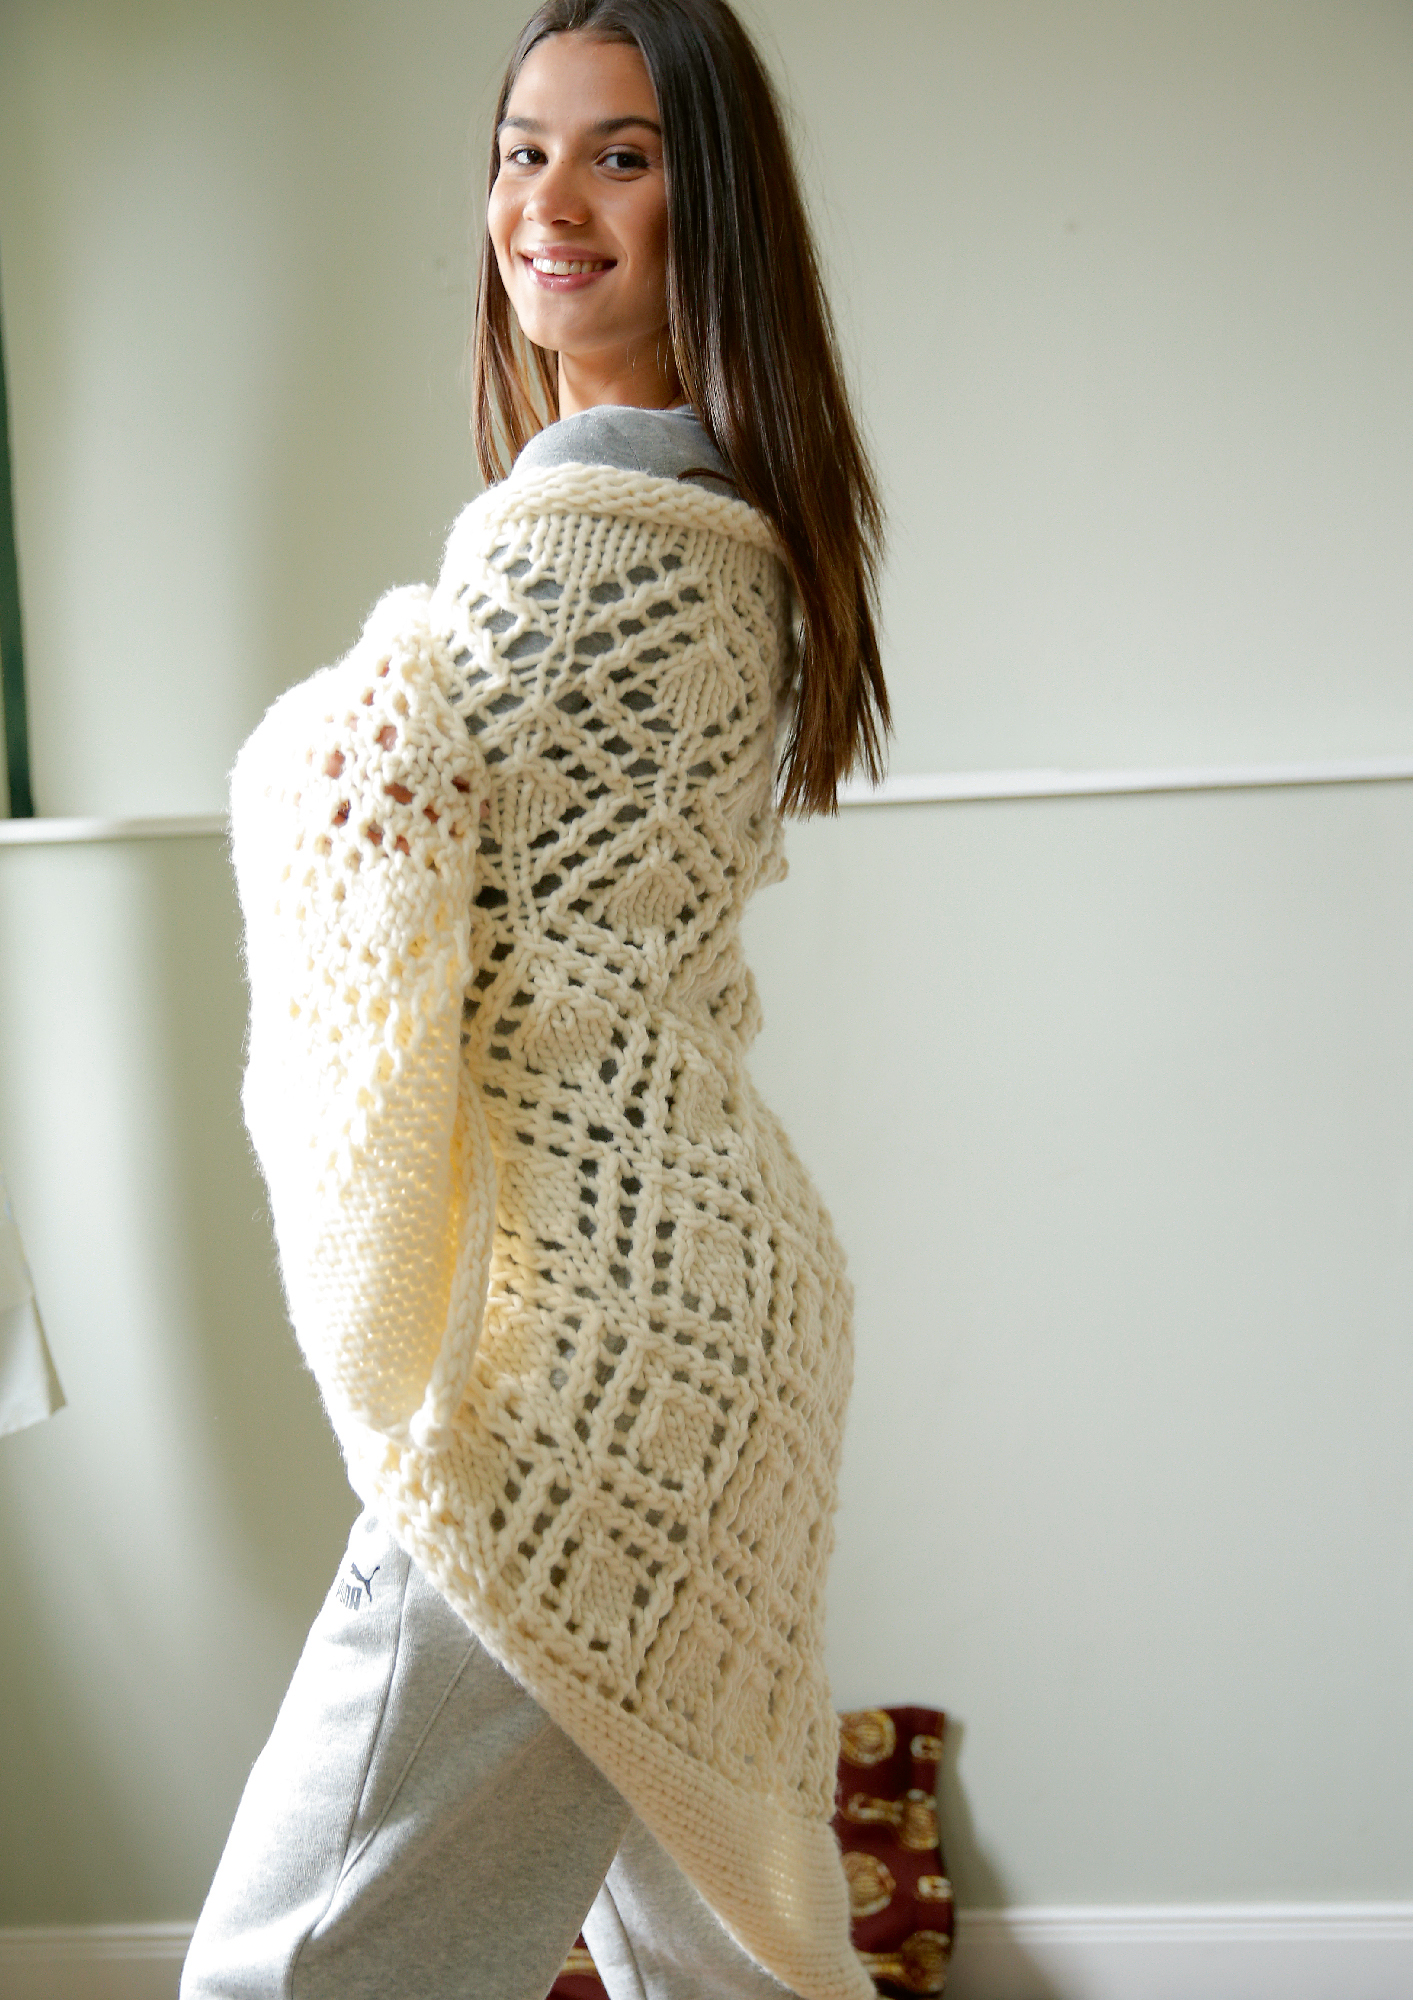 dff32dea1894 Preview  Triangular shawl with peep-hole pattern ...